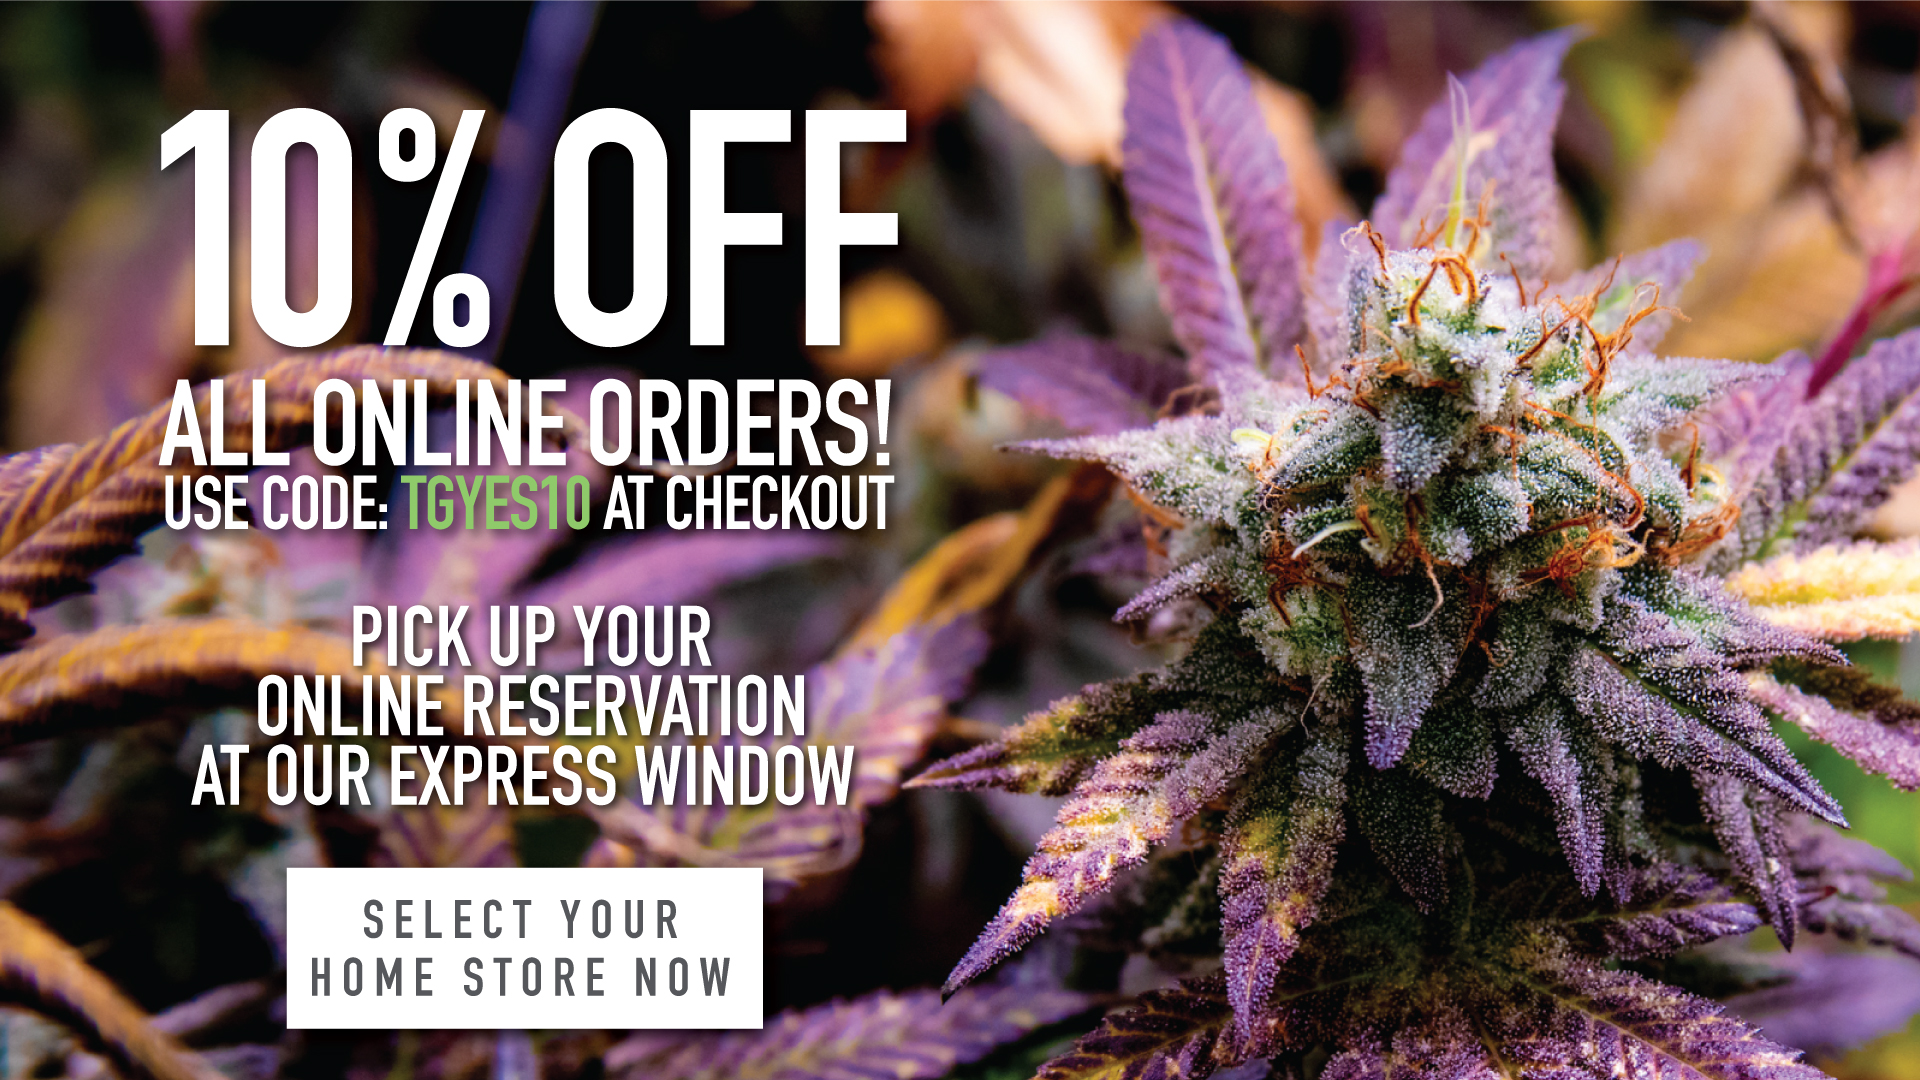 Order Online and Pick Up at Express